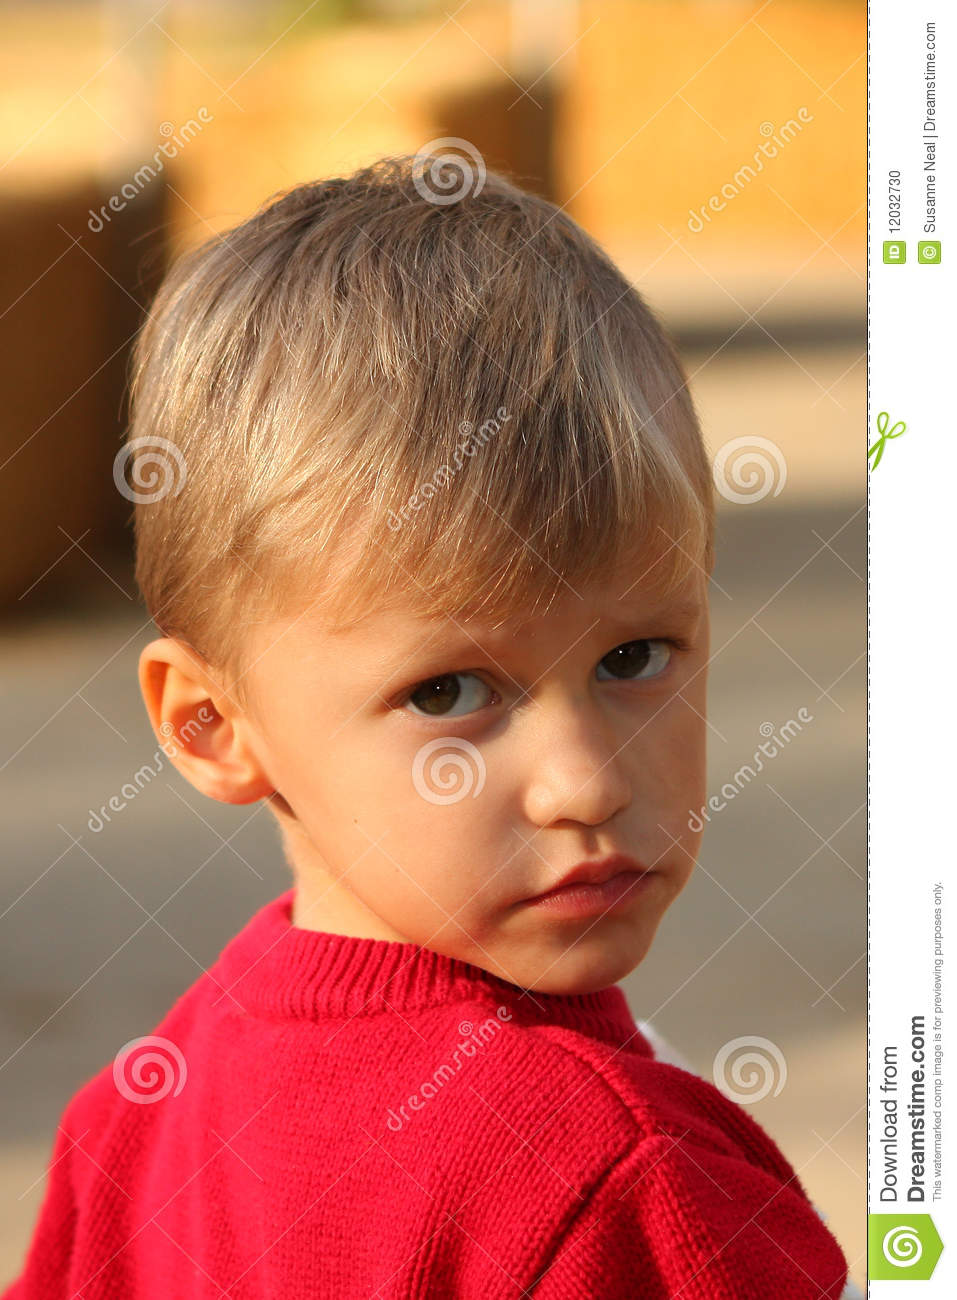 Adorable Four Year Boy With Big Blue Eyes Stock Image: Portrait Of Cute Four Year Old Boy Stock Photo